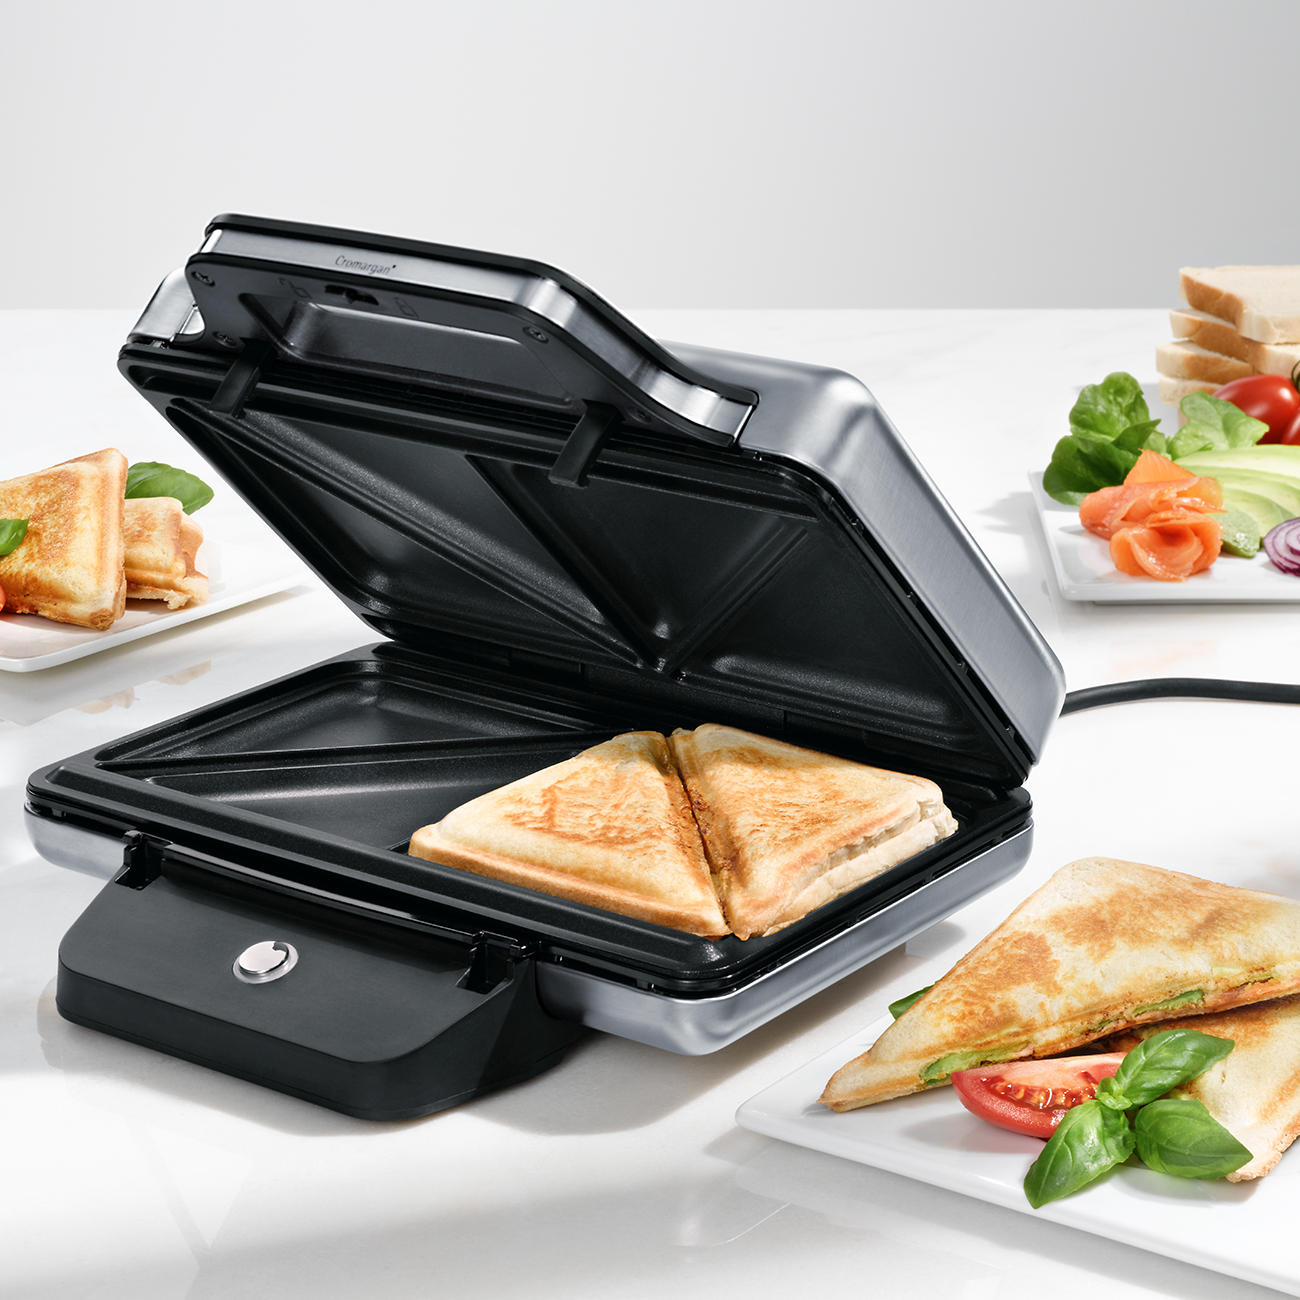 buy wmf lono sandwich toaster 3 year product guarantee. Black Bedroom Furniture Sets. Home Design Ideas